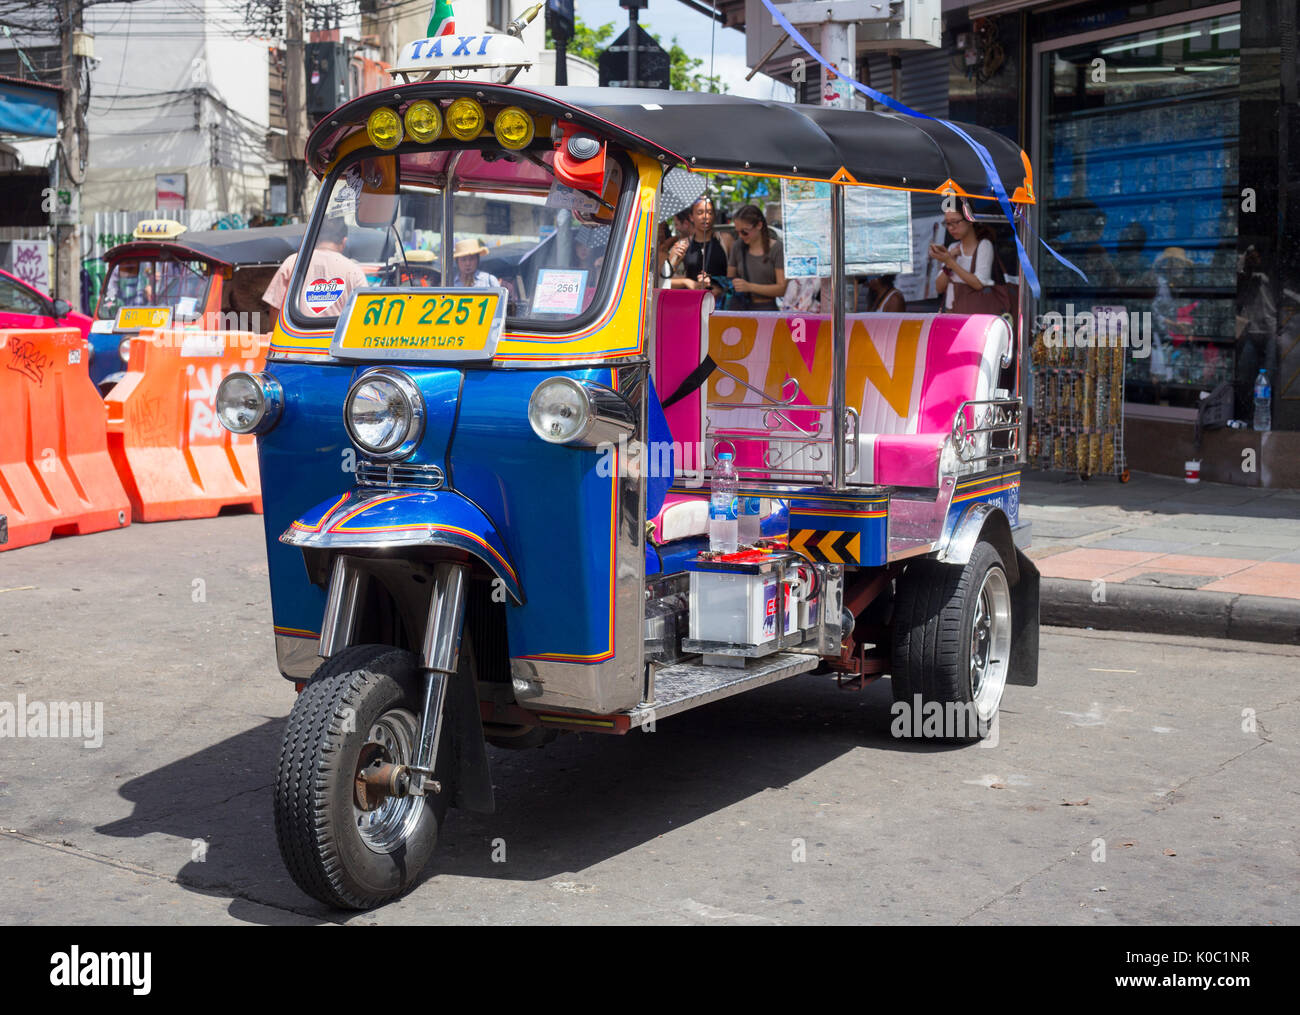 Tuk Tuk on Khao San Road, Bangkok - Stock Image